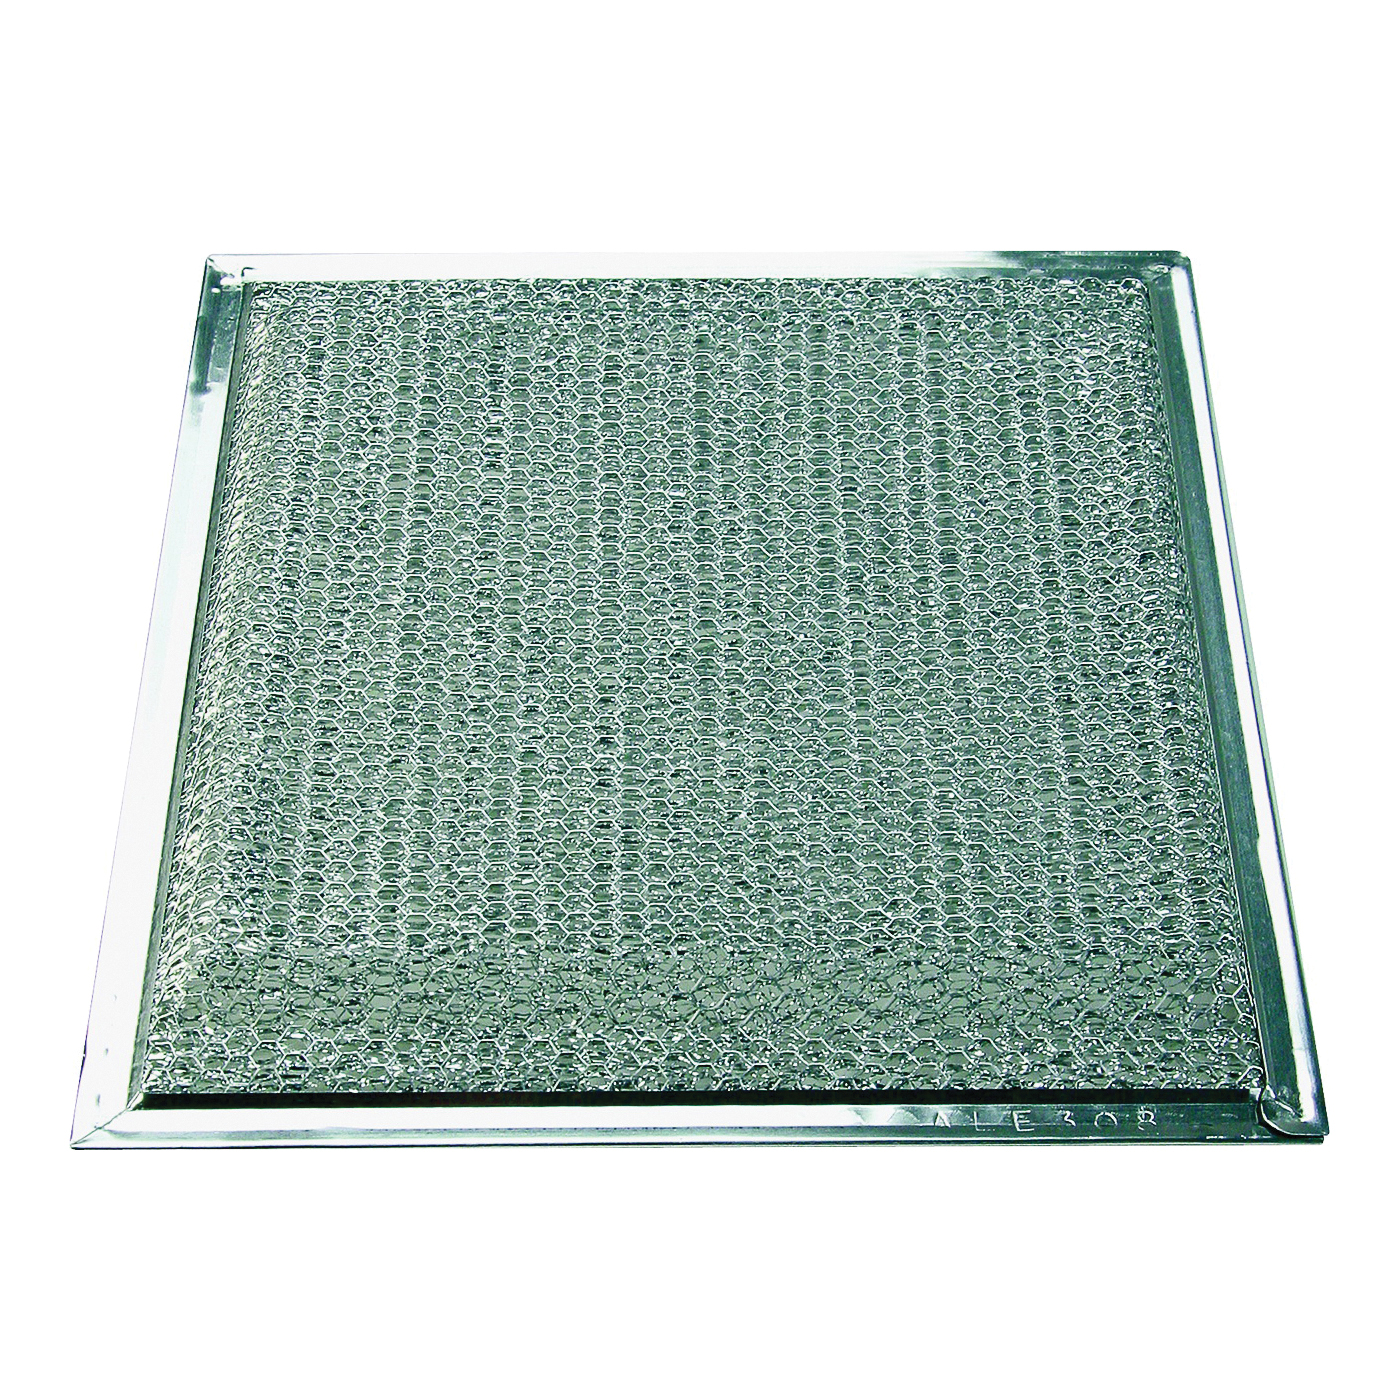 Picture of Air King RF35S Grease Filter, Aluminum, For: DS, AV, AR, AX Series Range Hoods